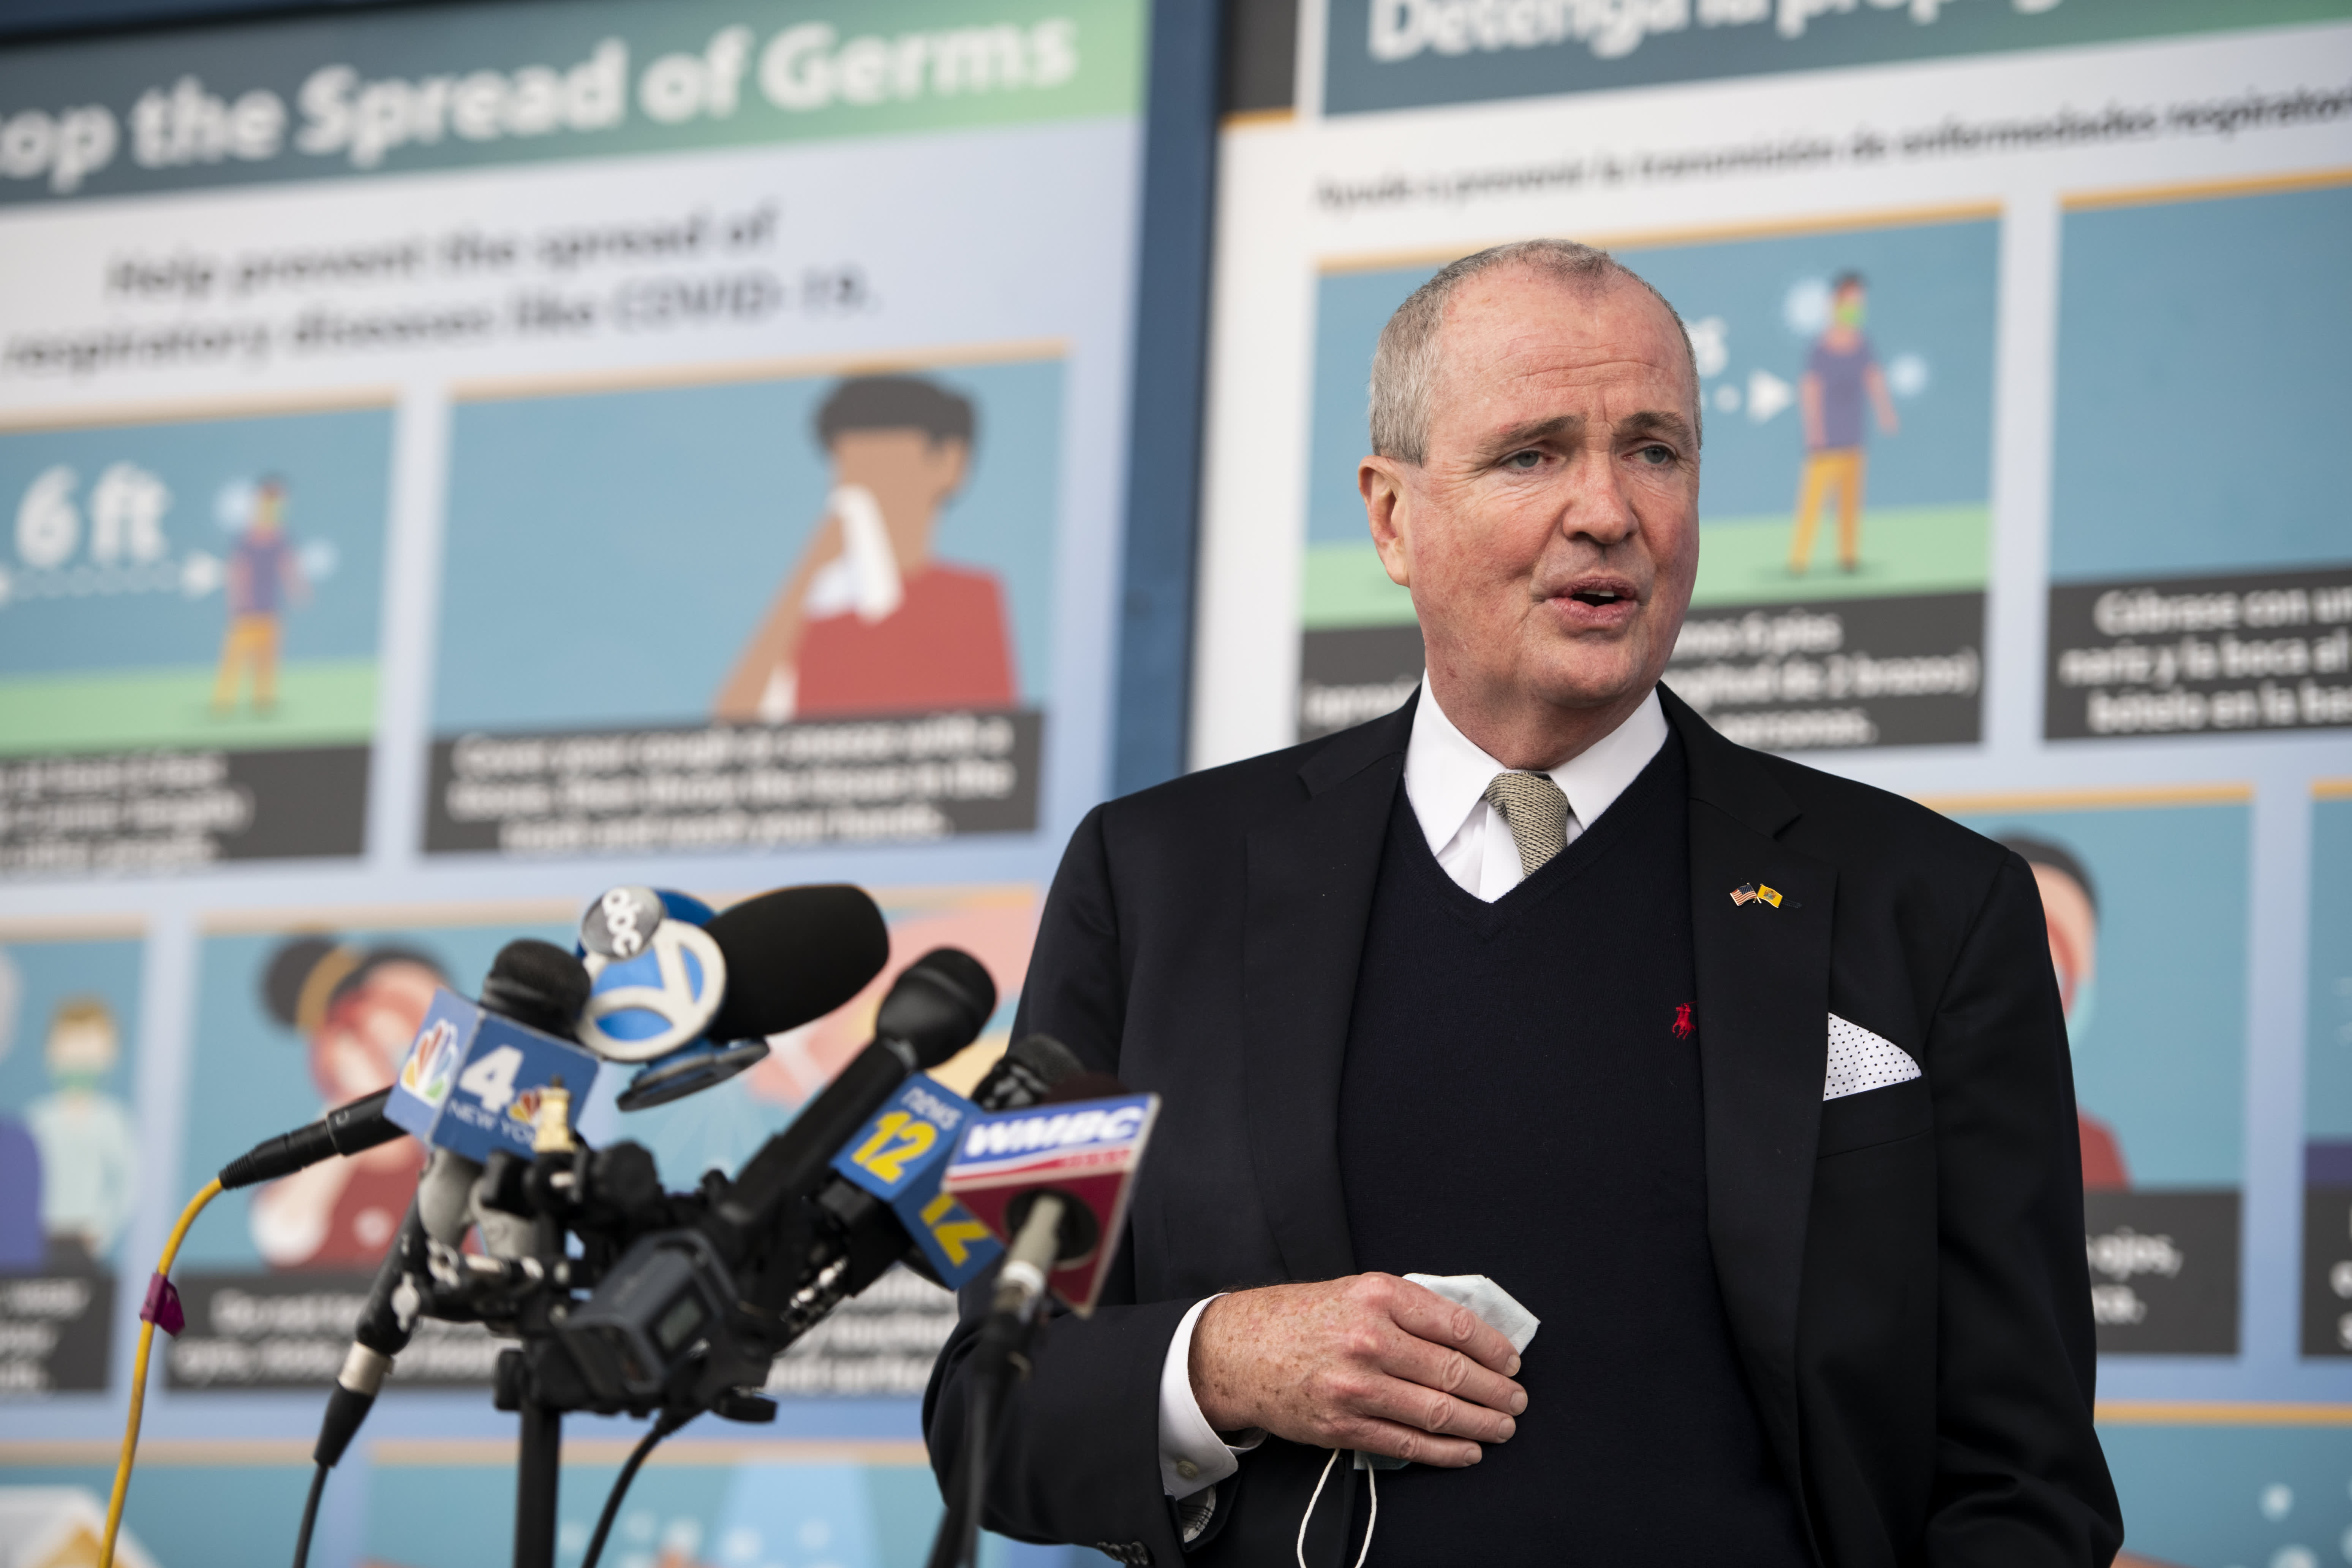 New Jersey to give free beer to Covid vaccine recipients